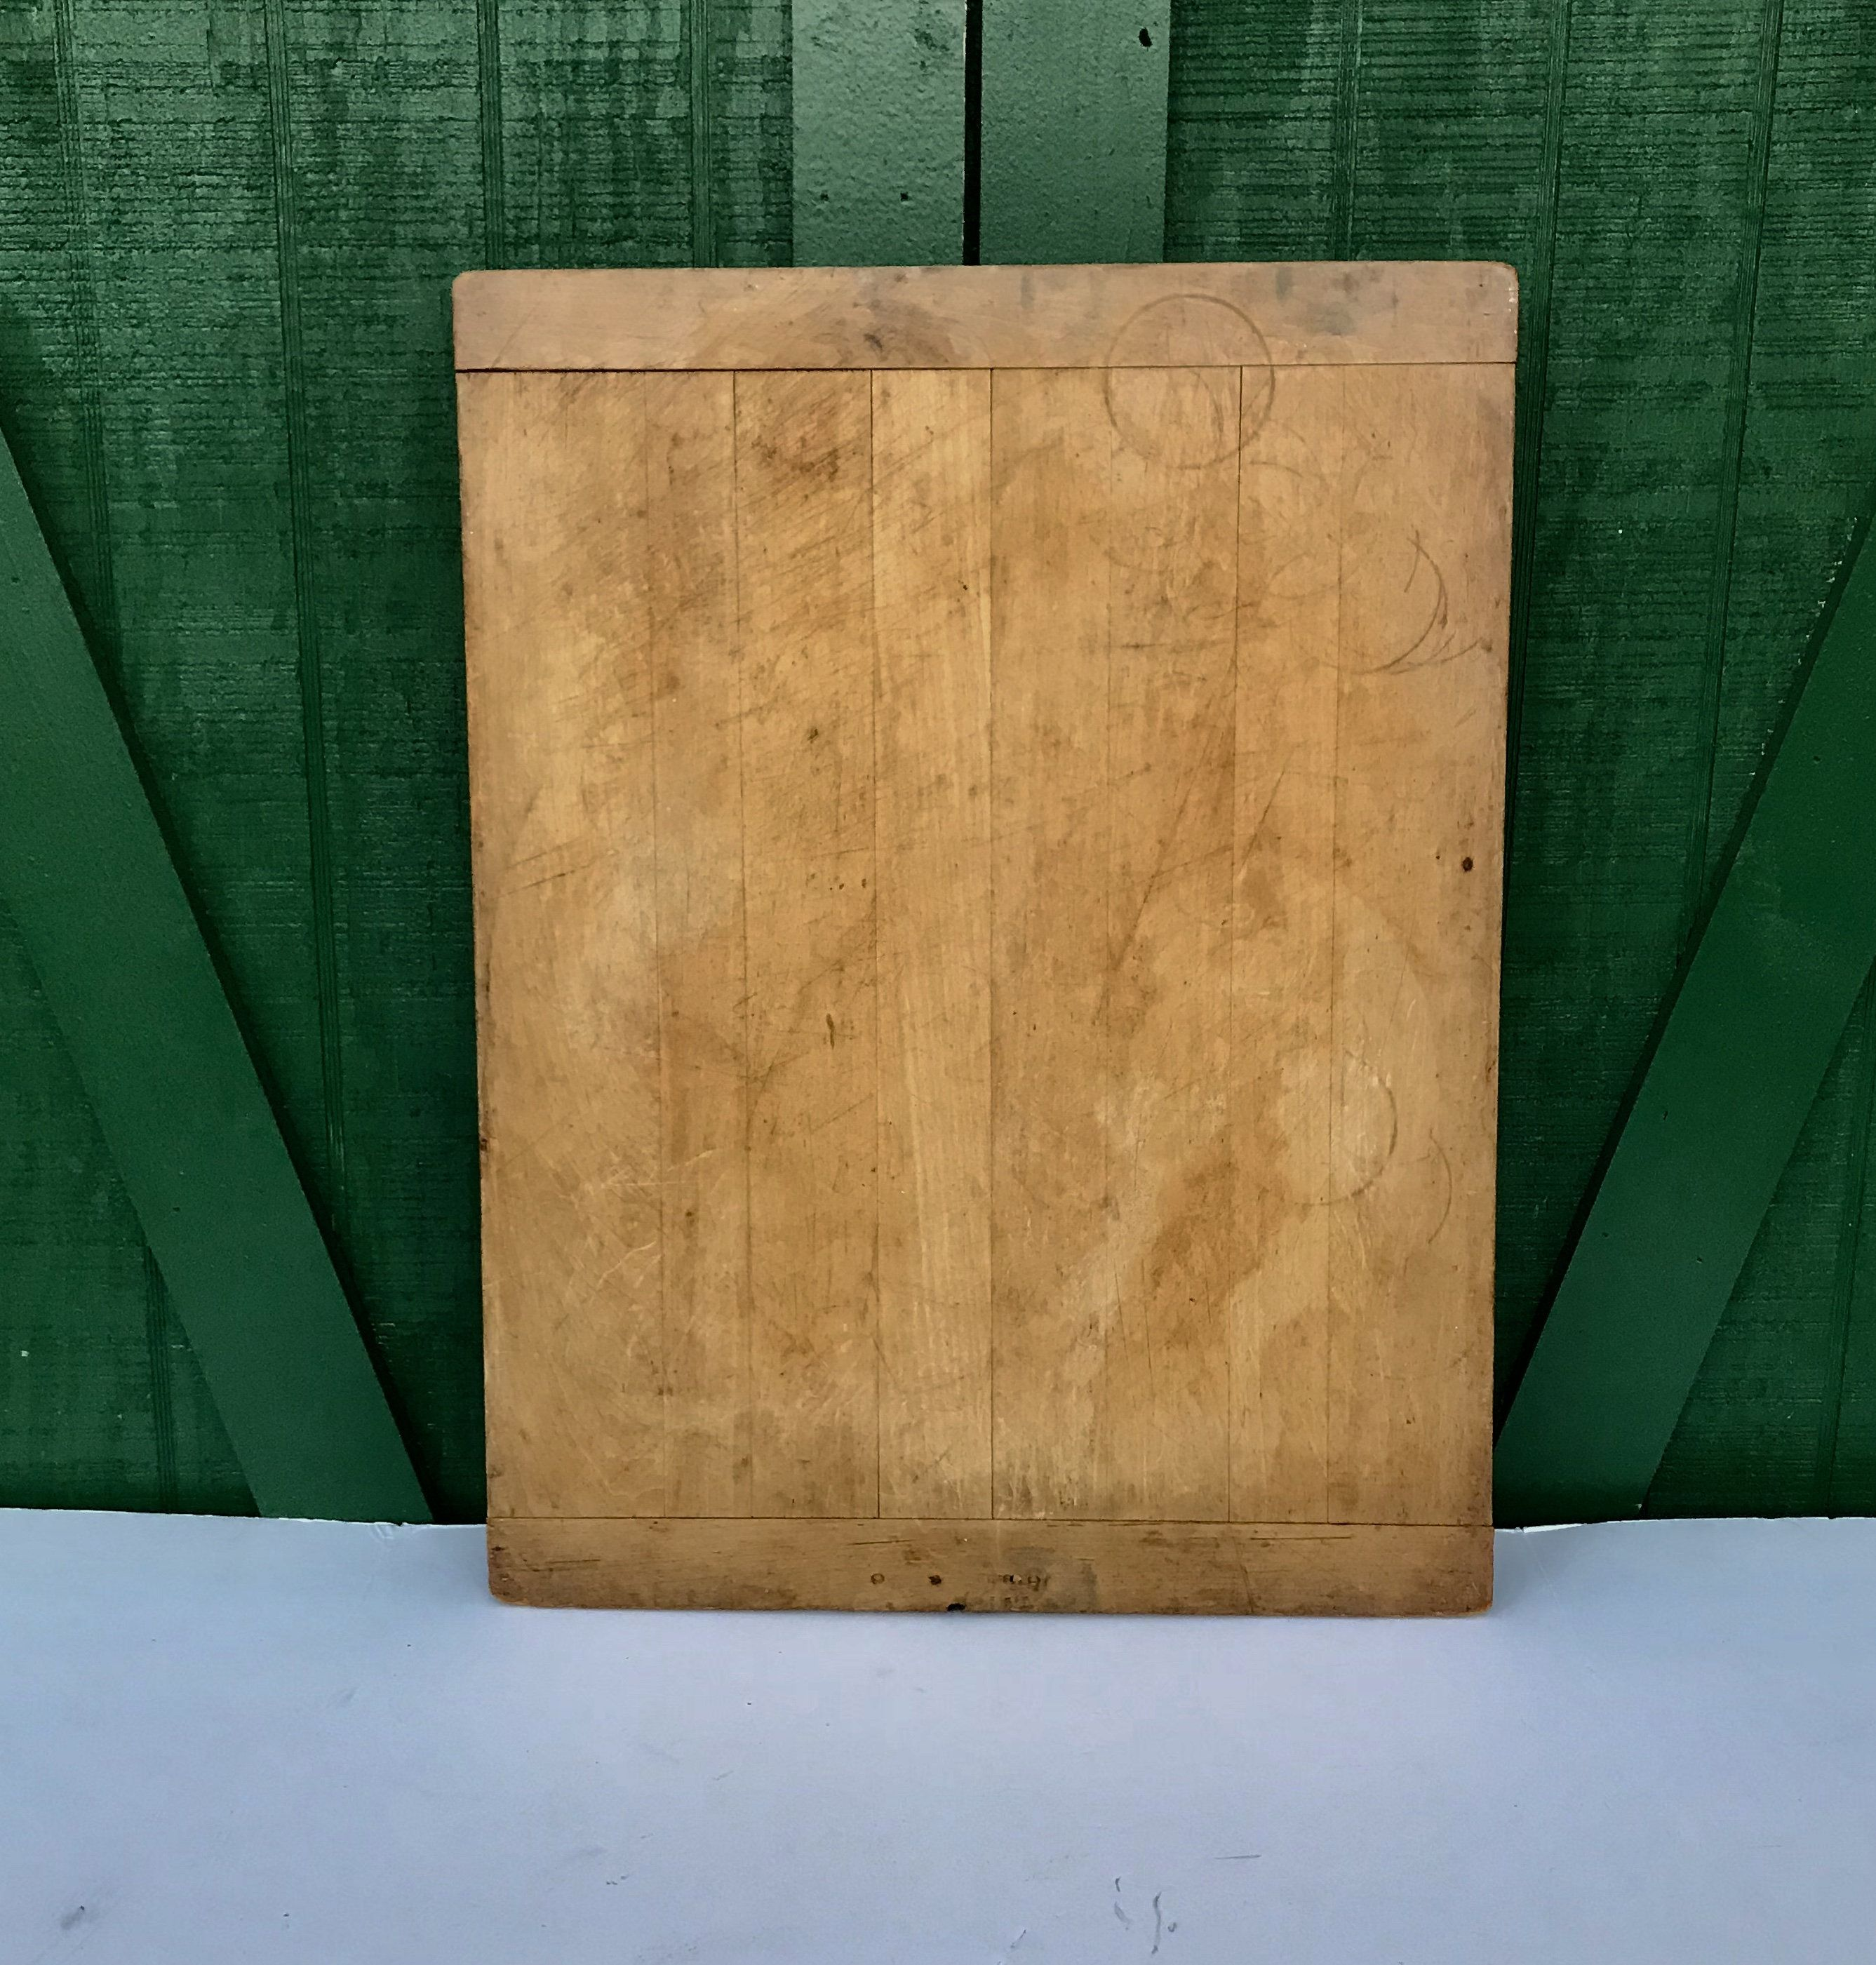 Vintage Cutting Board Pastry Board Large Maple Board Kitchen